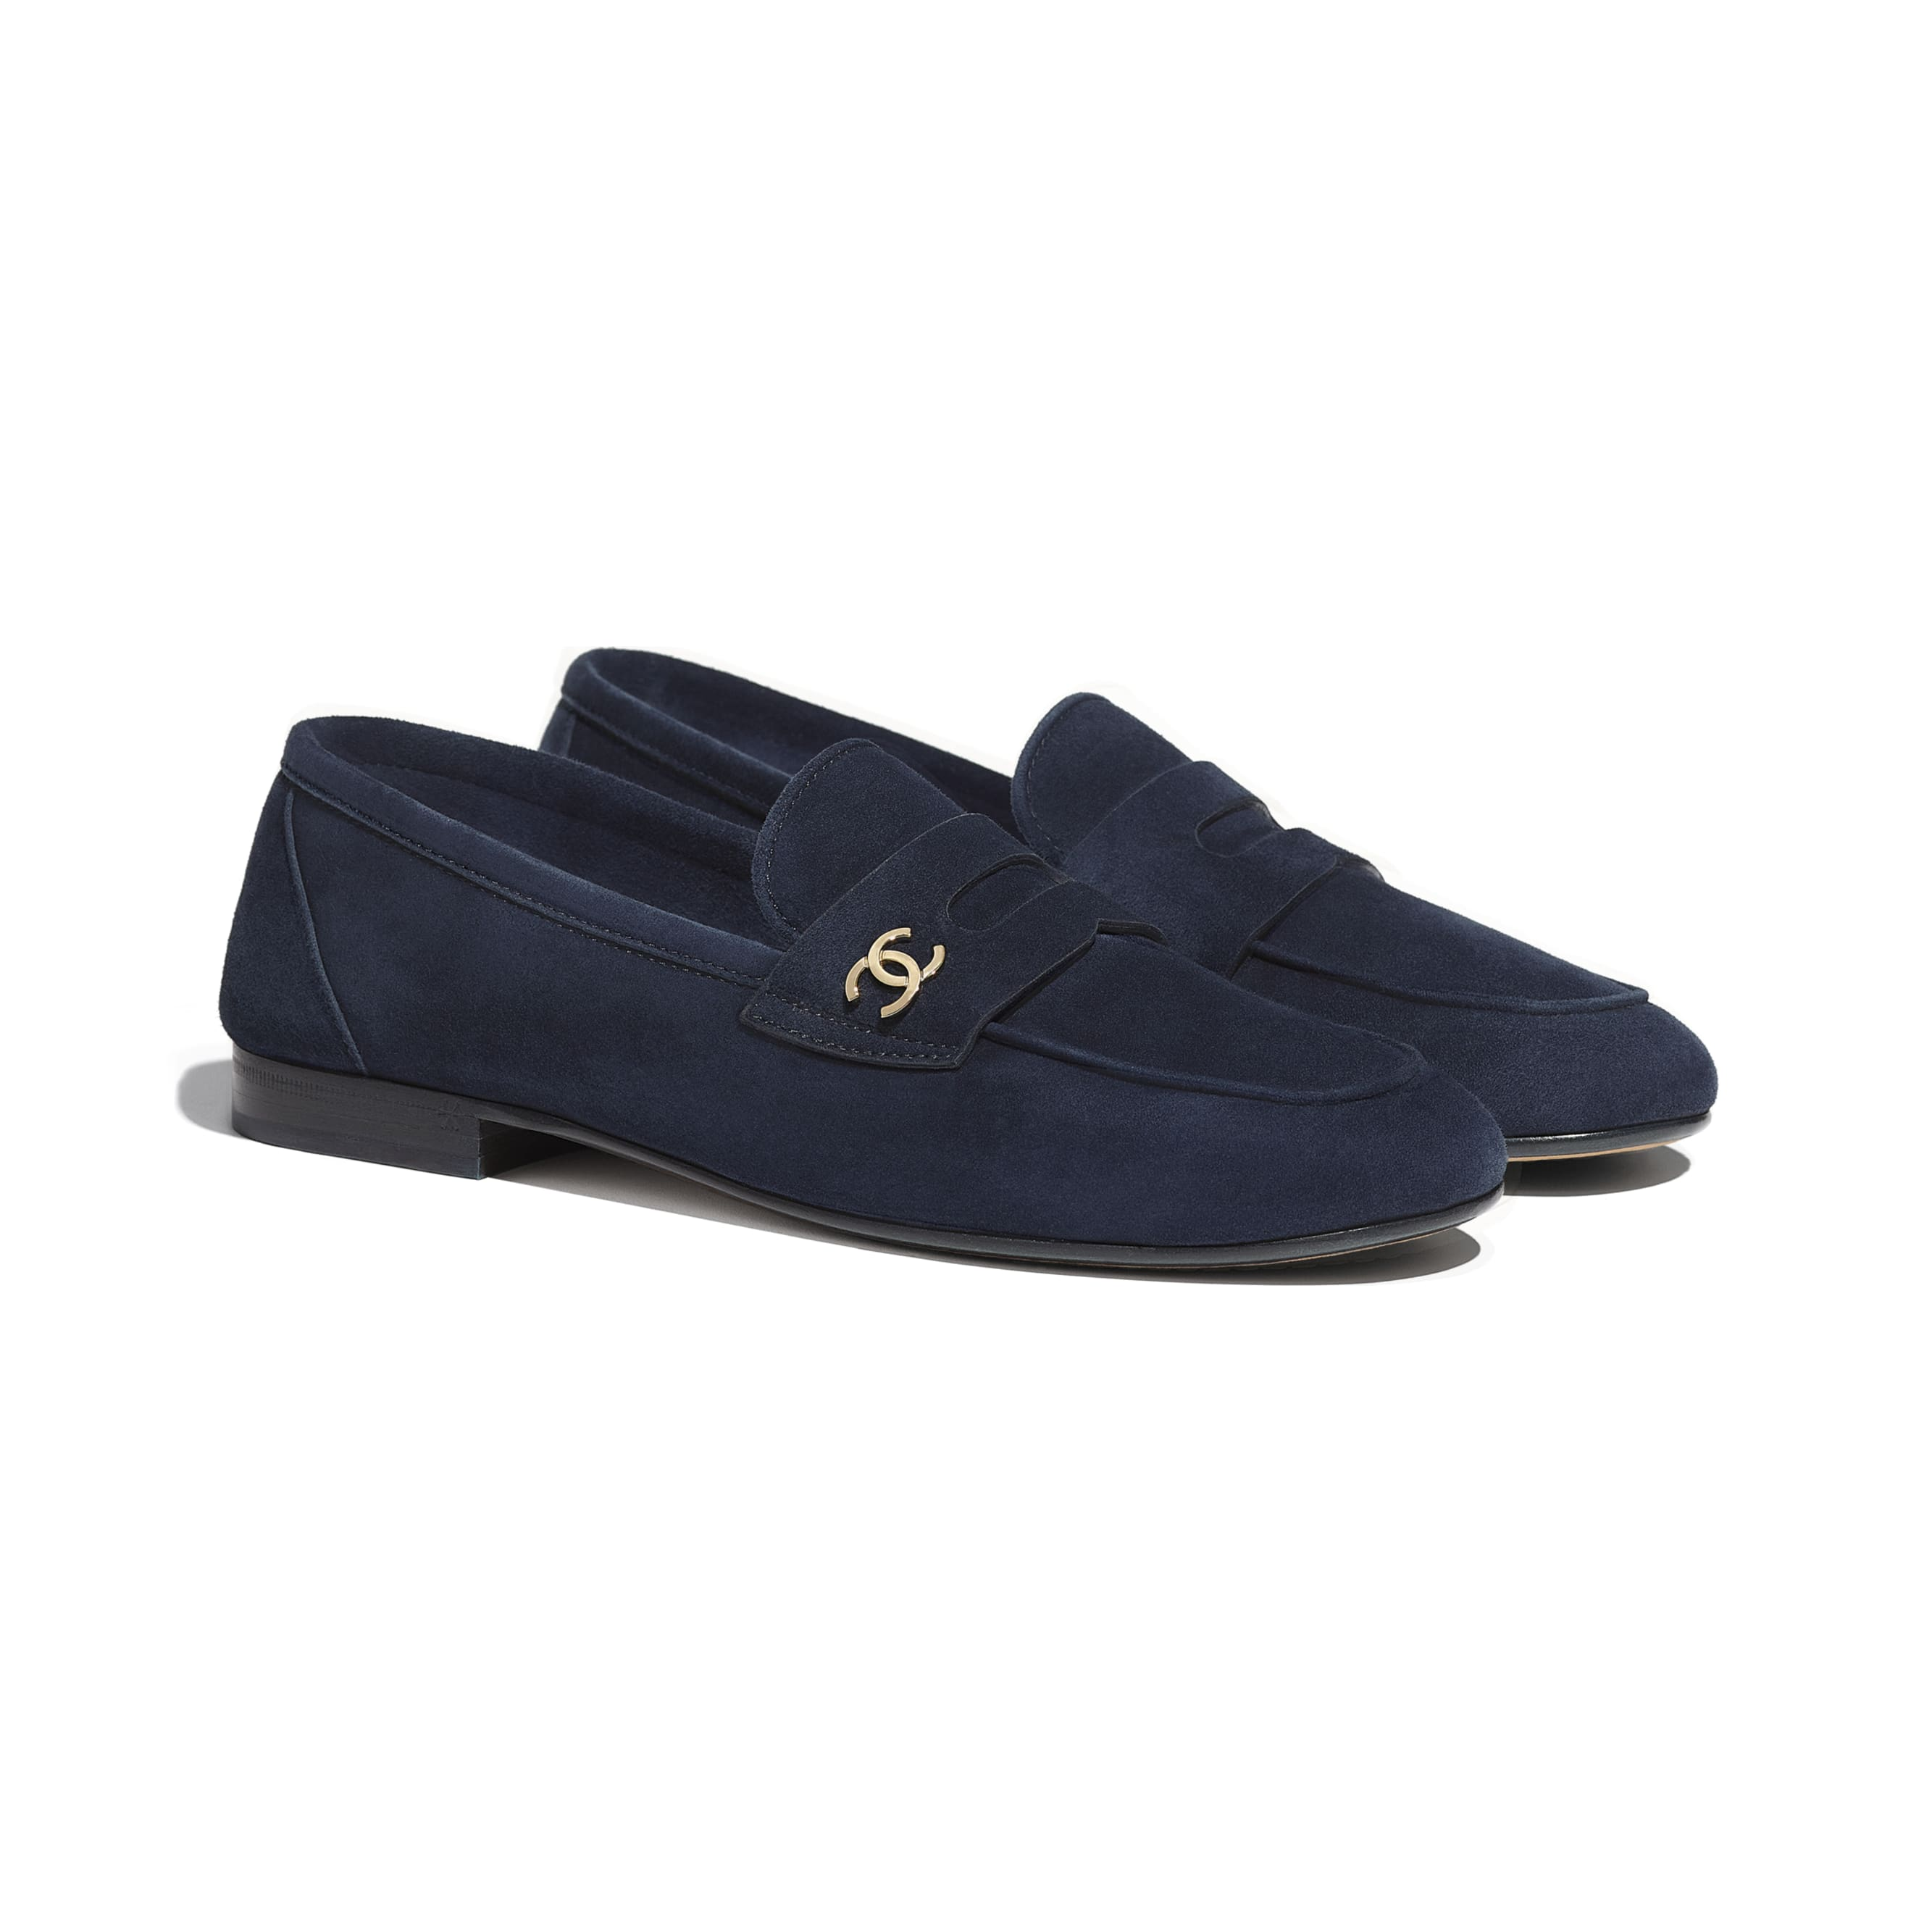 Loafers - Navy Blue - Suede Calfskin - CHANEL - Alternative view - see standard sized version